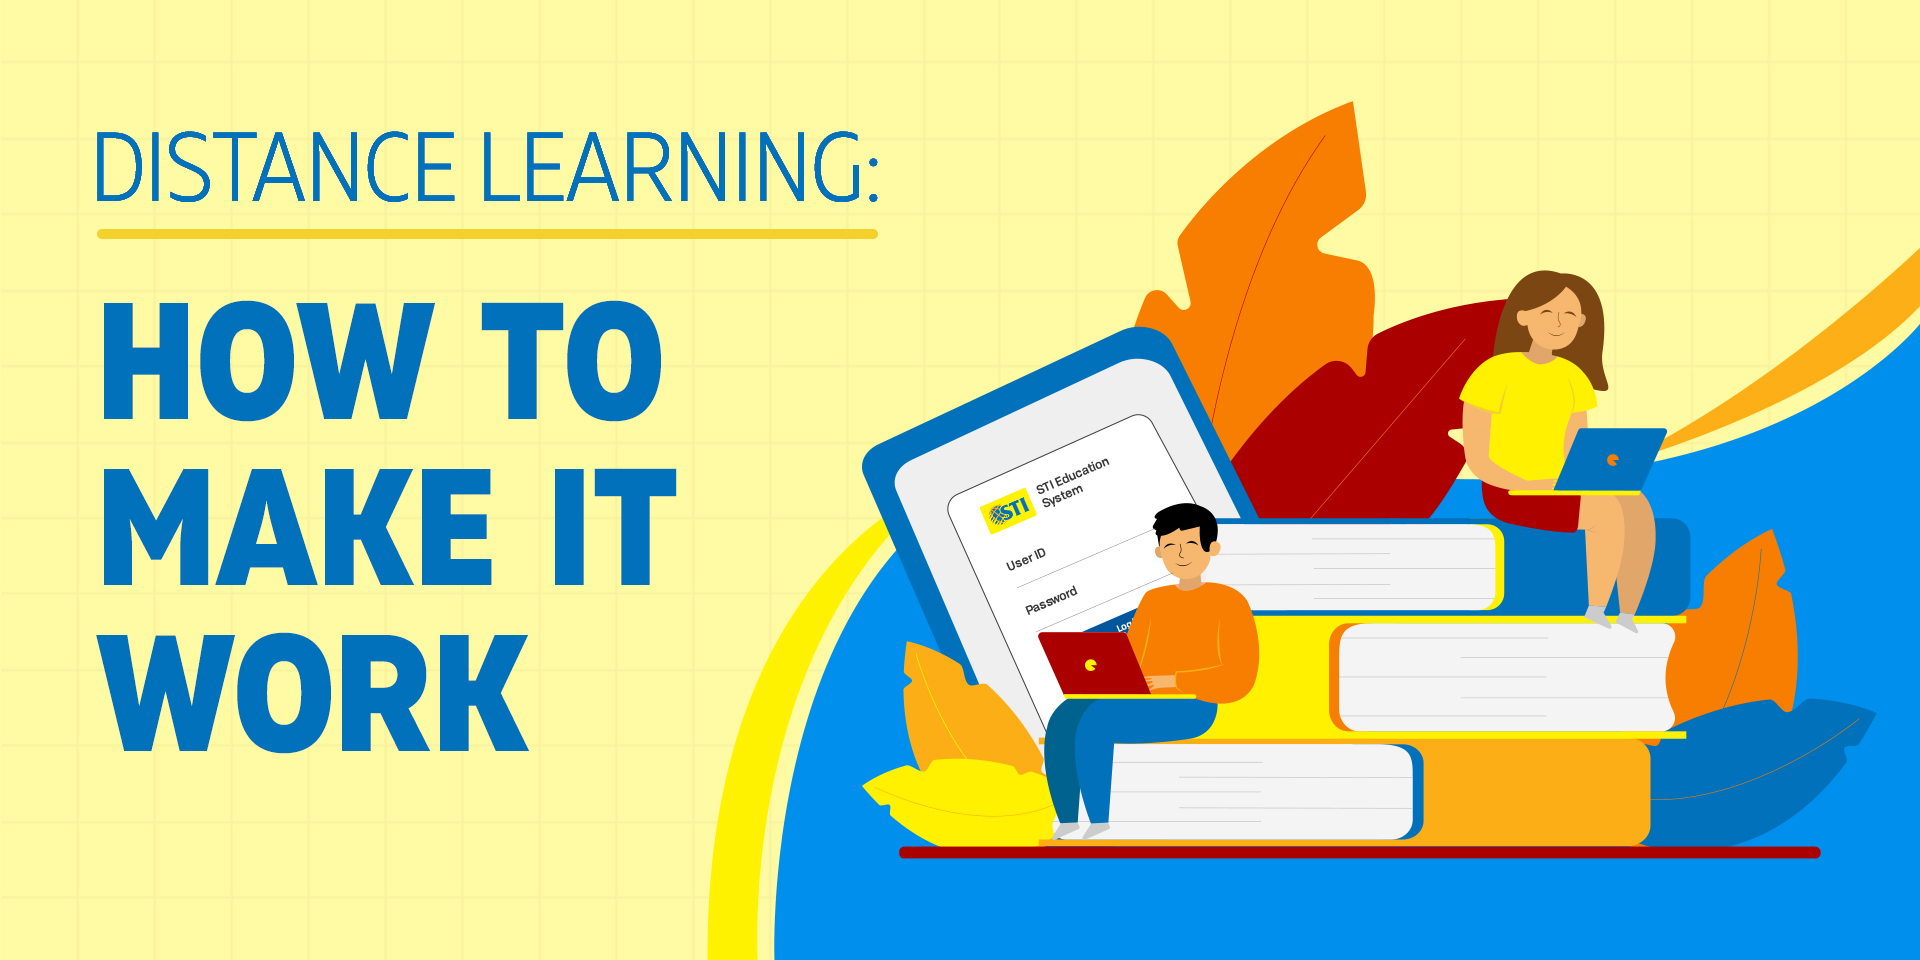 Distance Learning: How to Make it Work